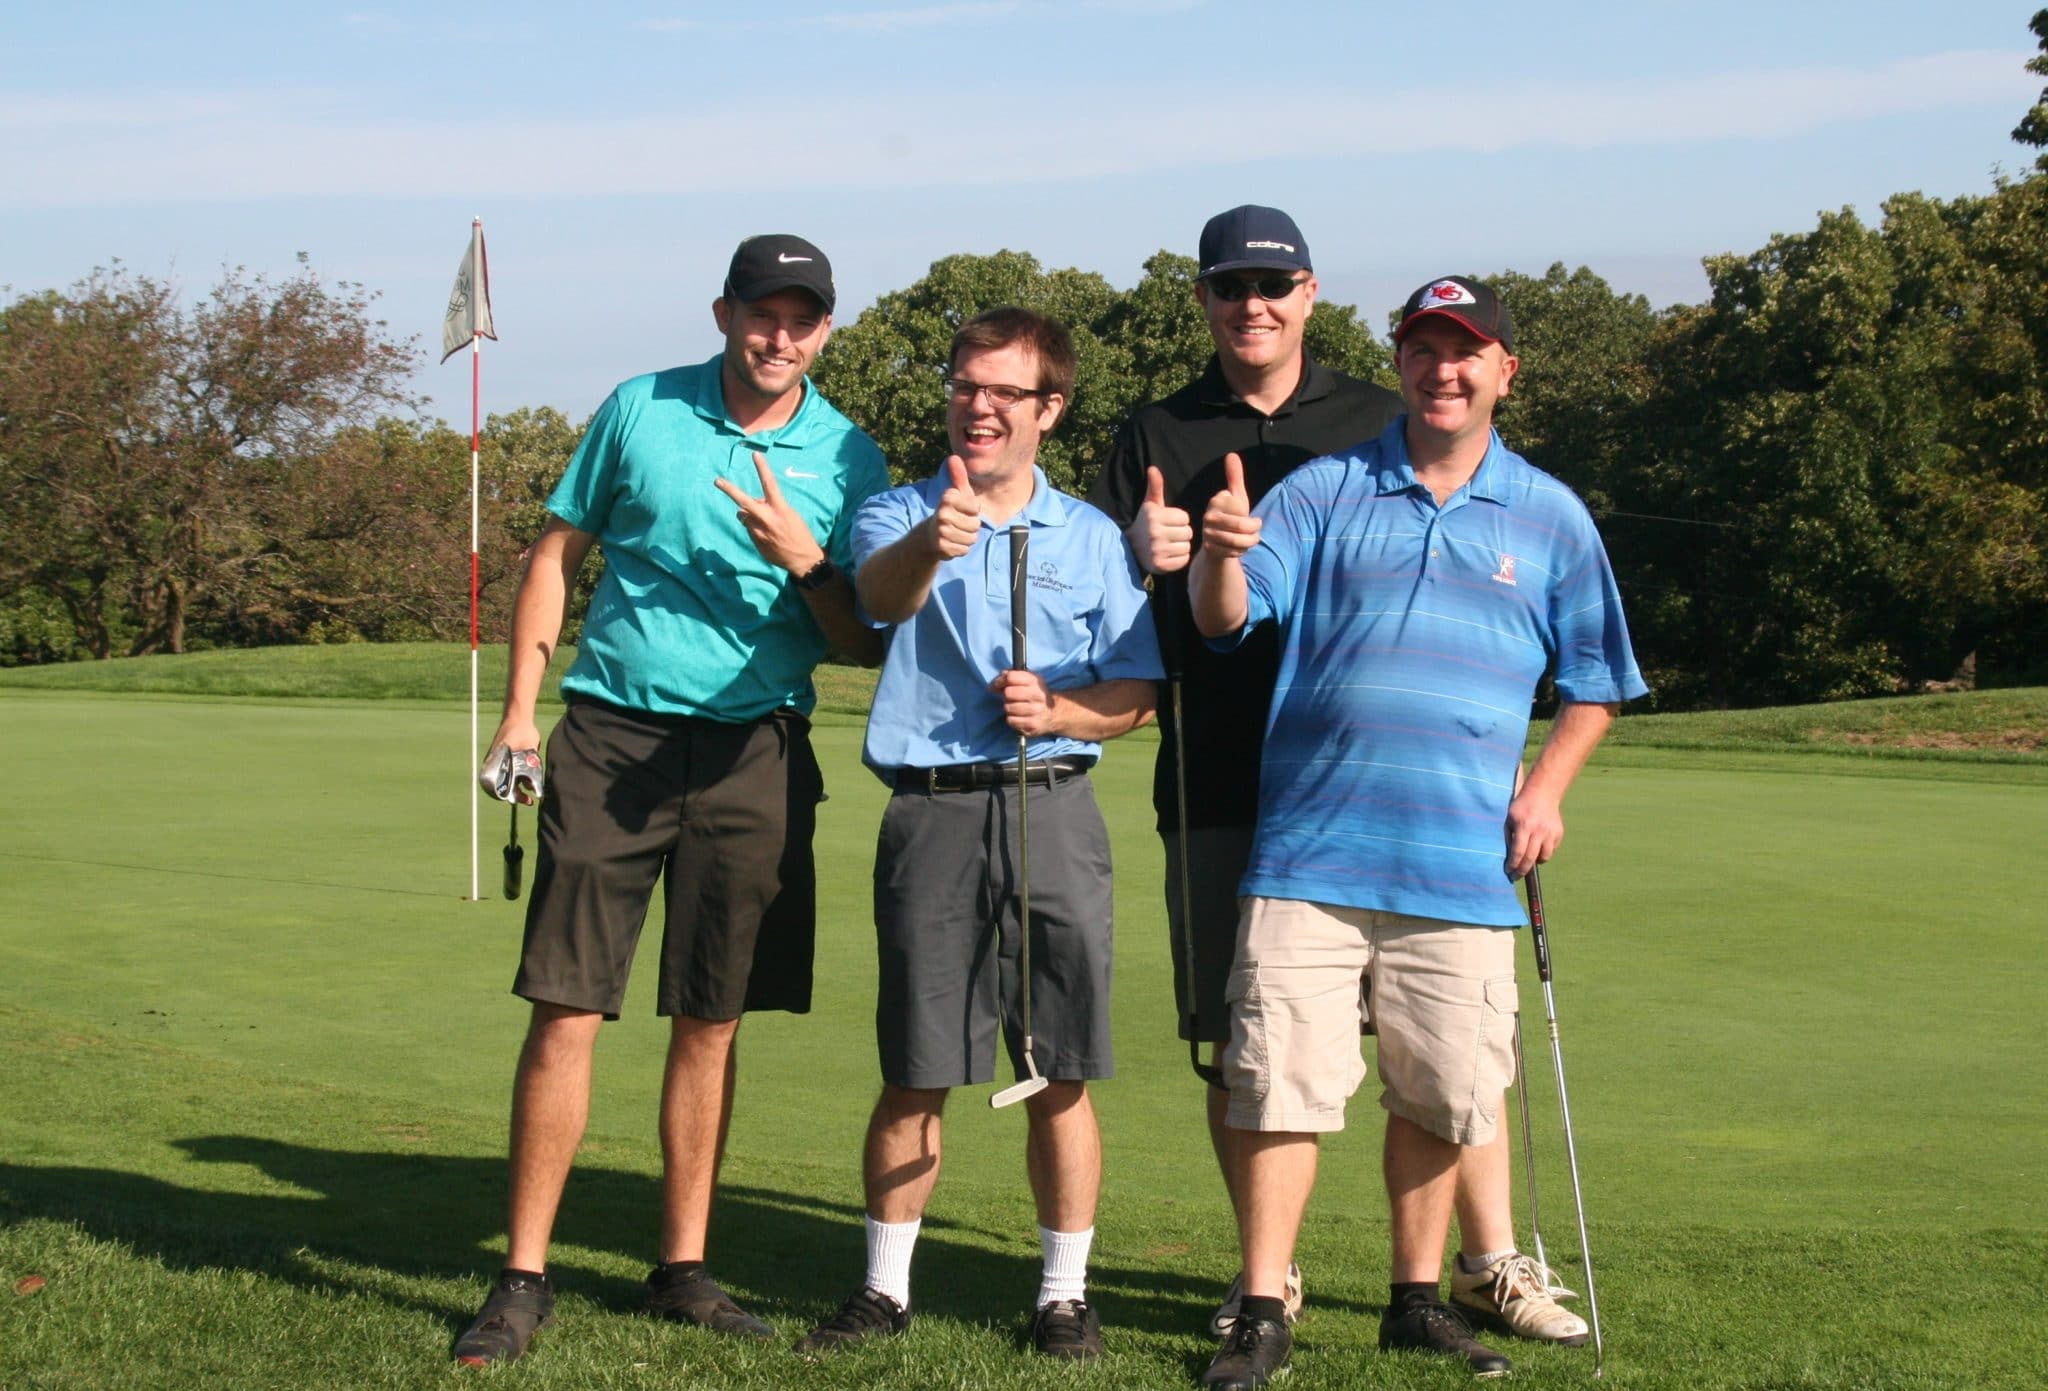 A group of golfers pose on a green by smiling at the camera and putting their thumbs in the air